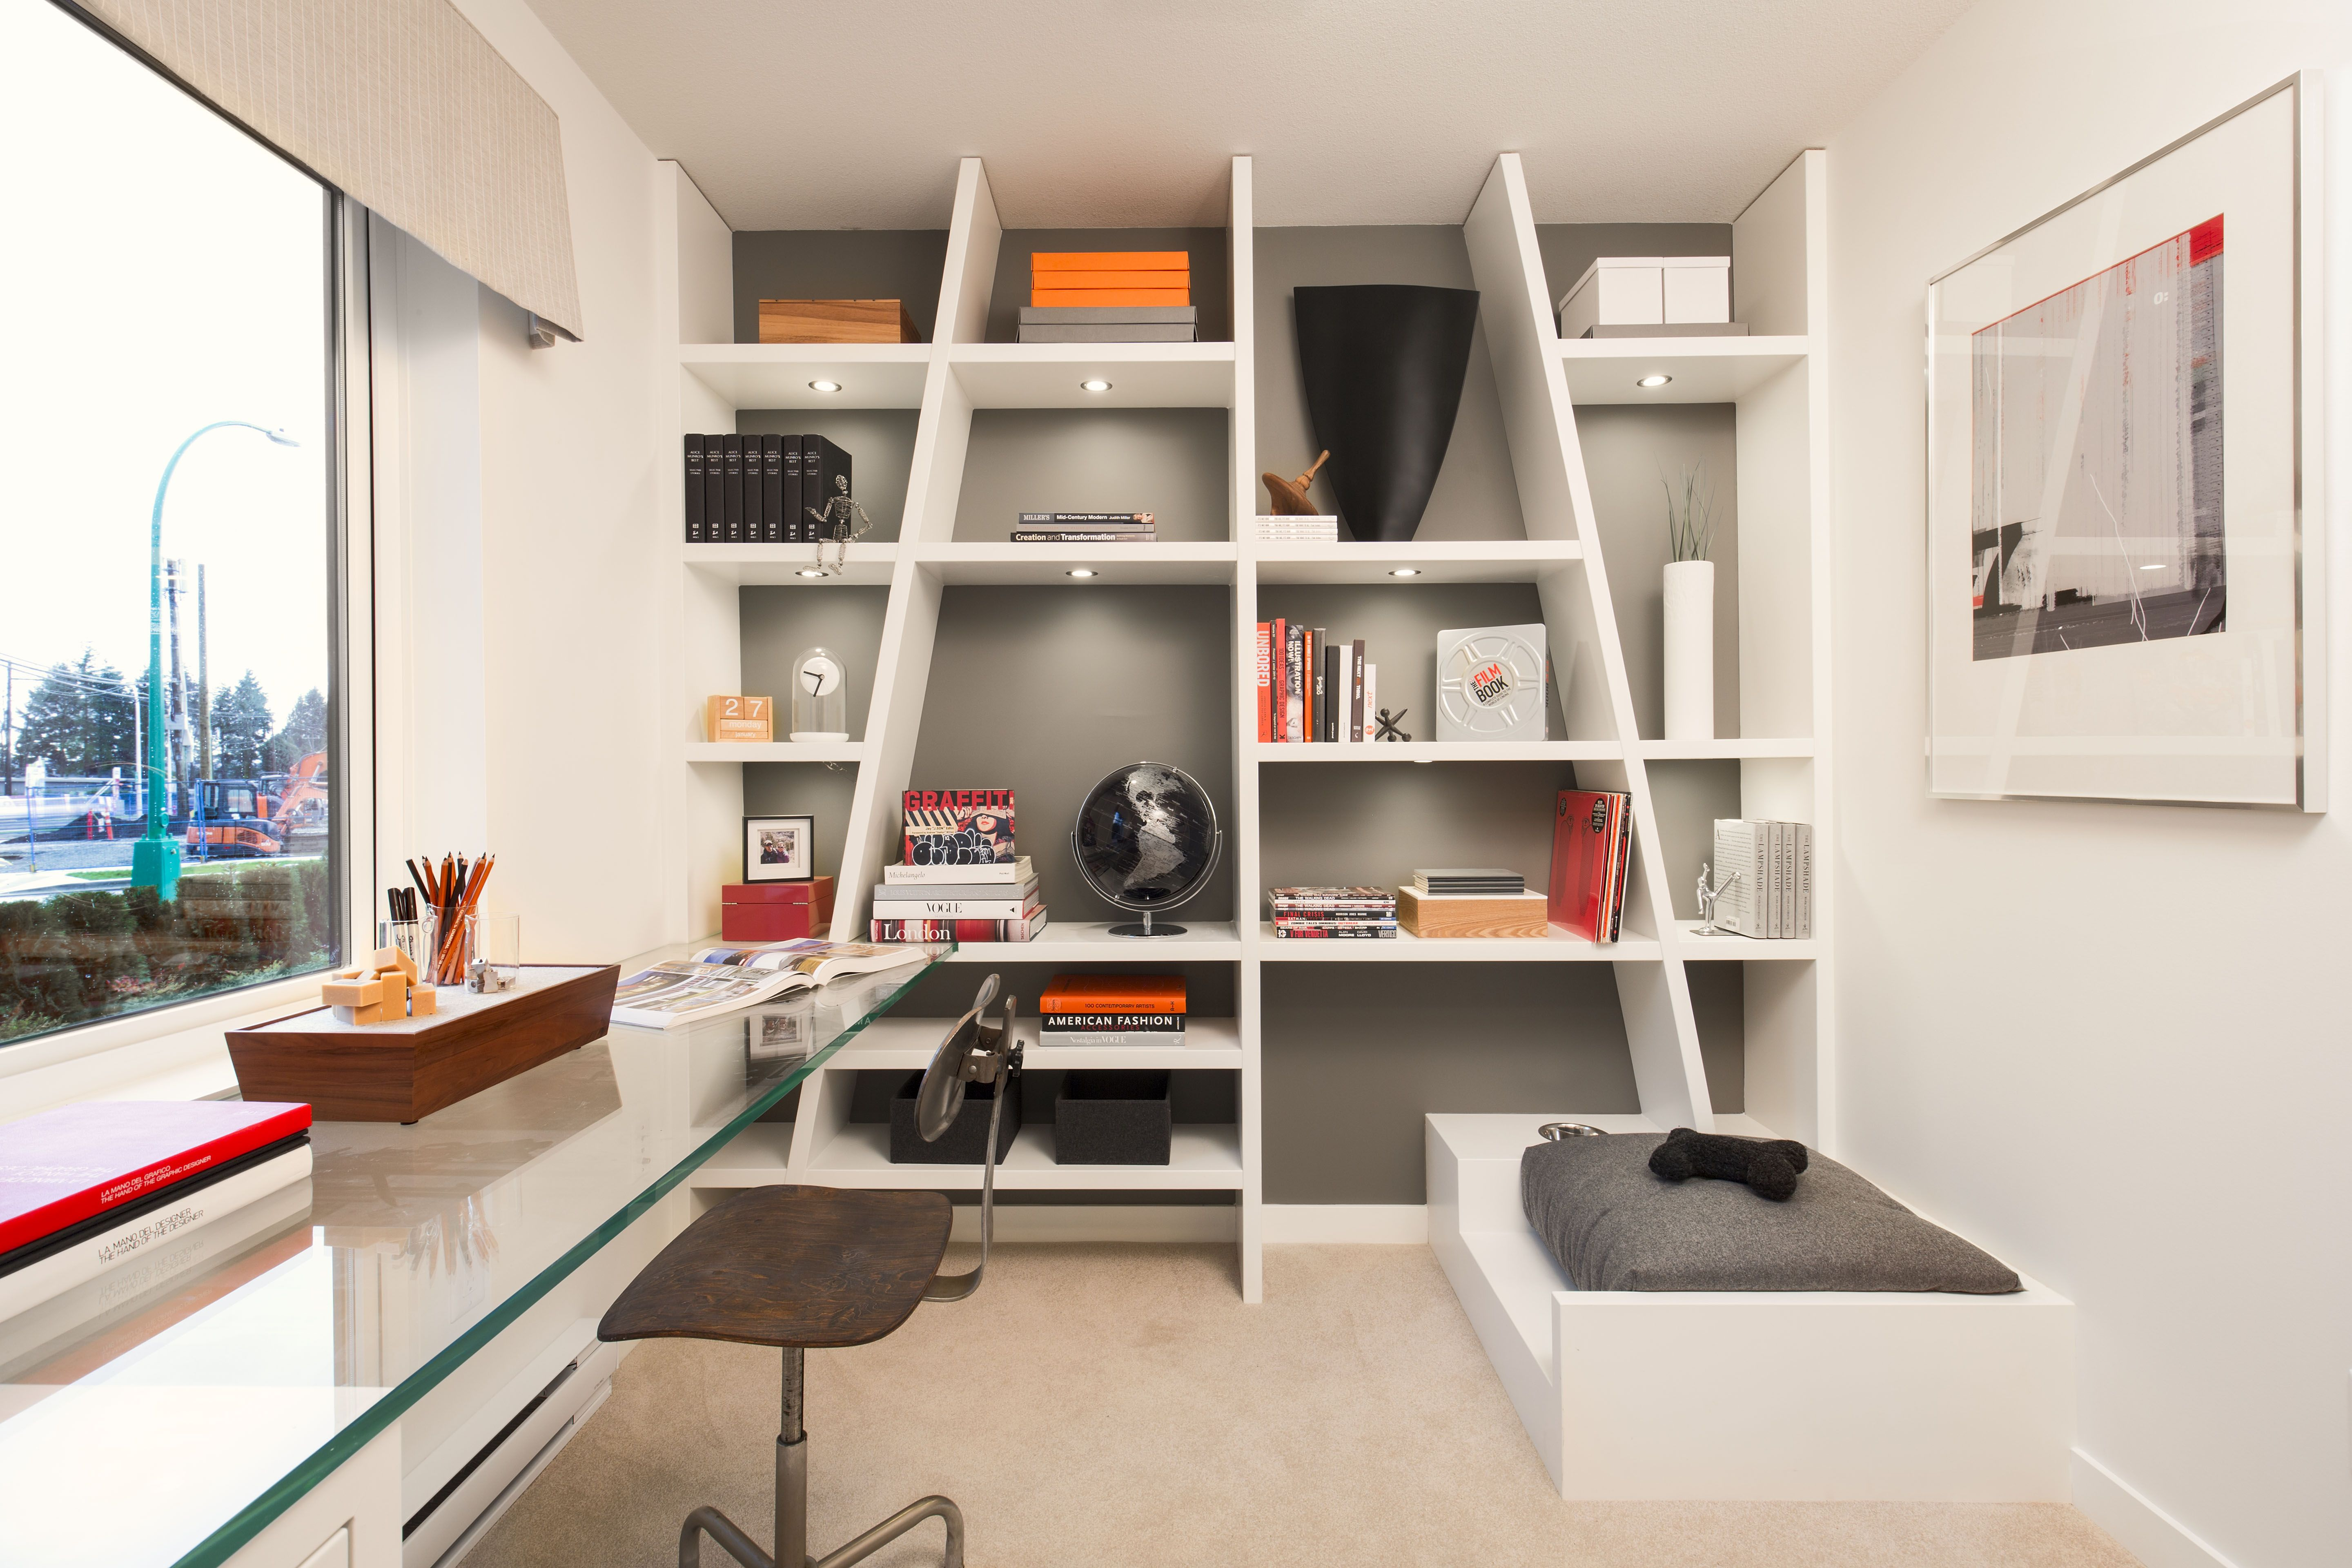 CLAYTON den • Multi-purpose room • Perfect for home office or flex ...